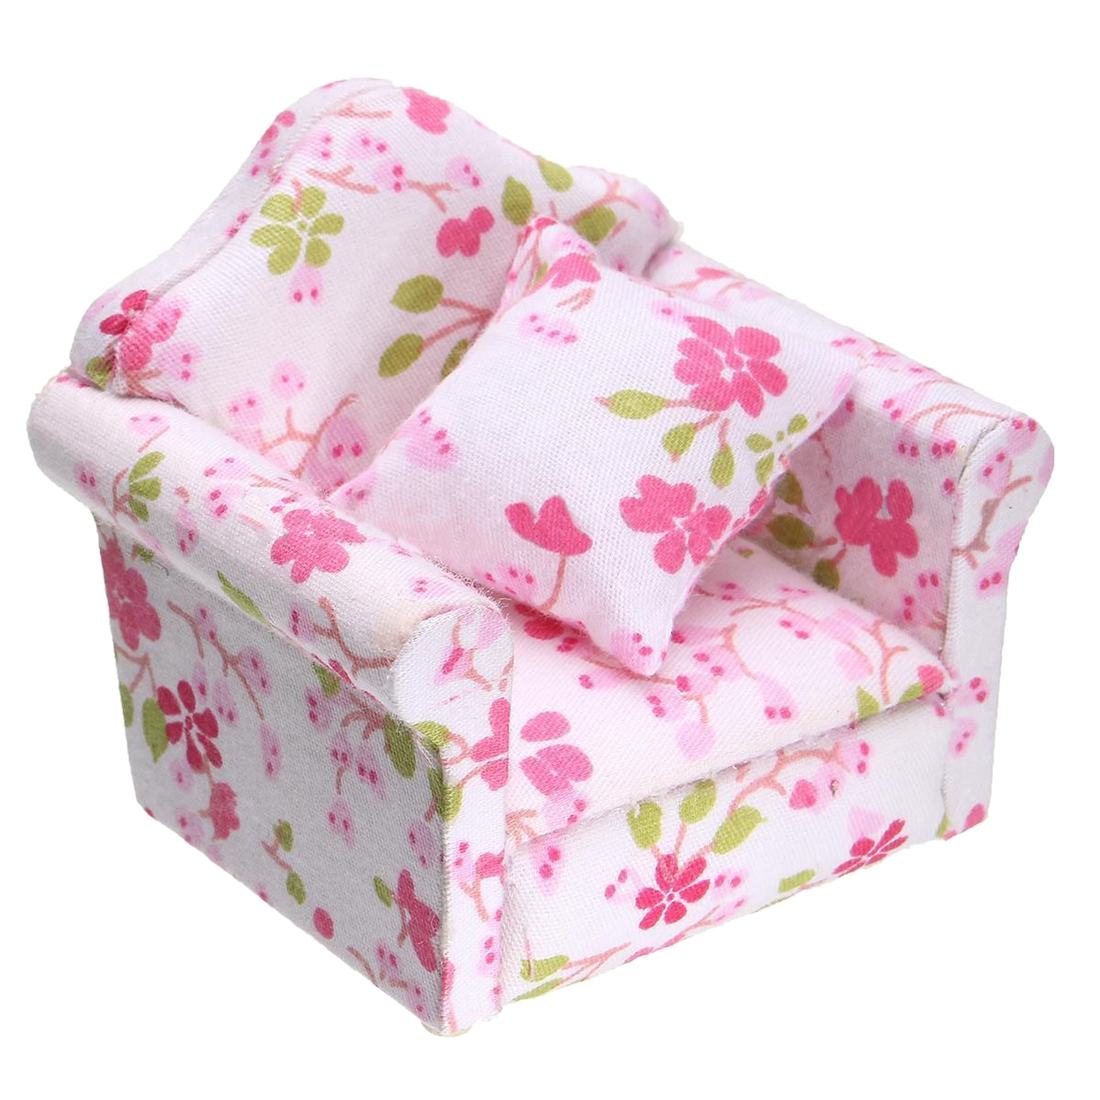 Abwe Best Sale 1/12 Scale Dollhouse Miniature Furniture Wooden Recliner Chaise Couch Sofa Pink Suitable For Men And Women Of All Ages In All Seasons Toys & Hobbies